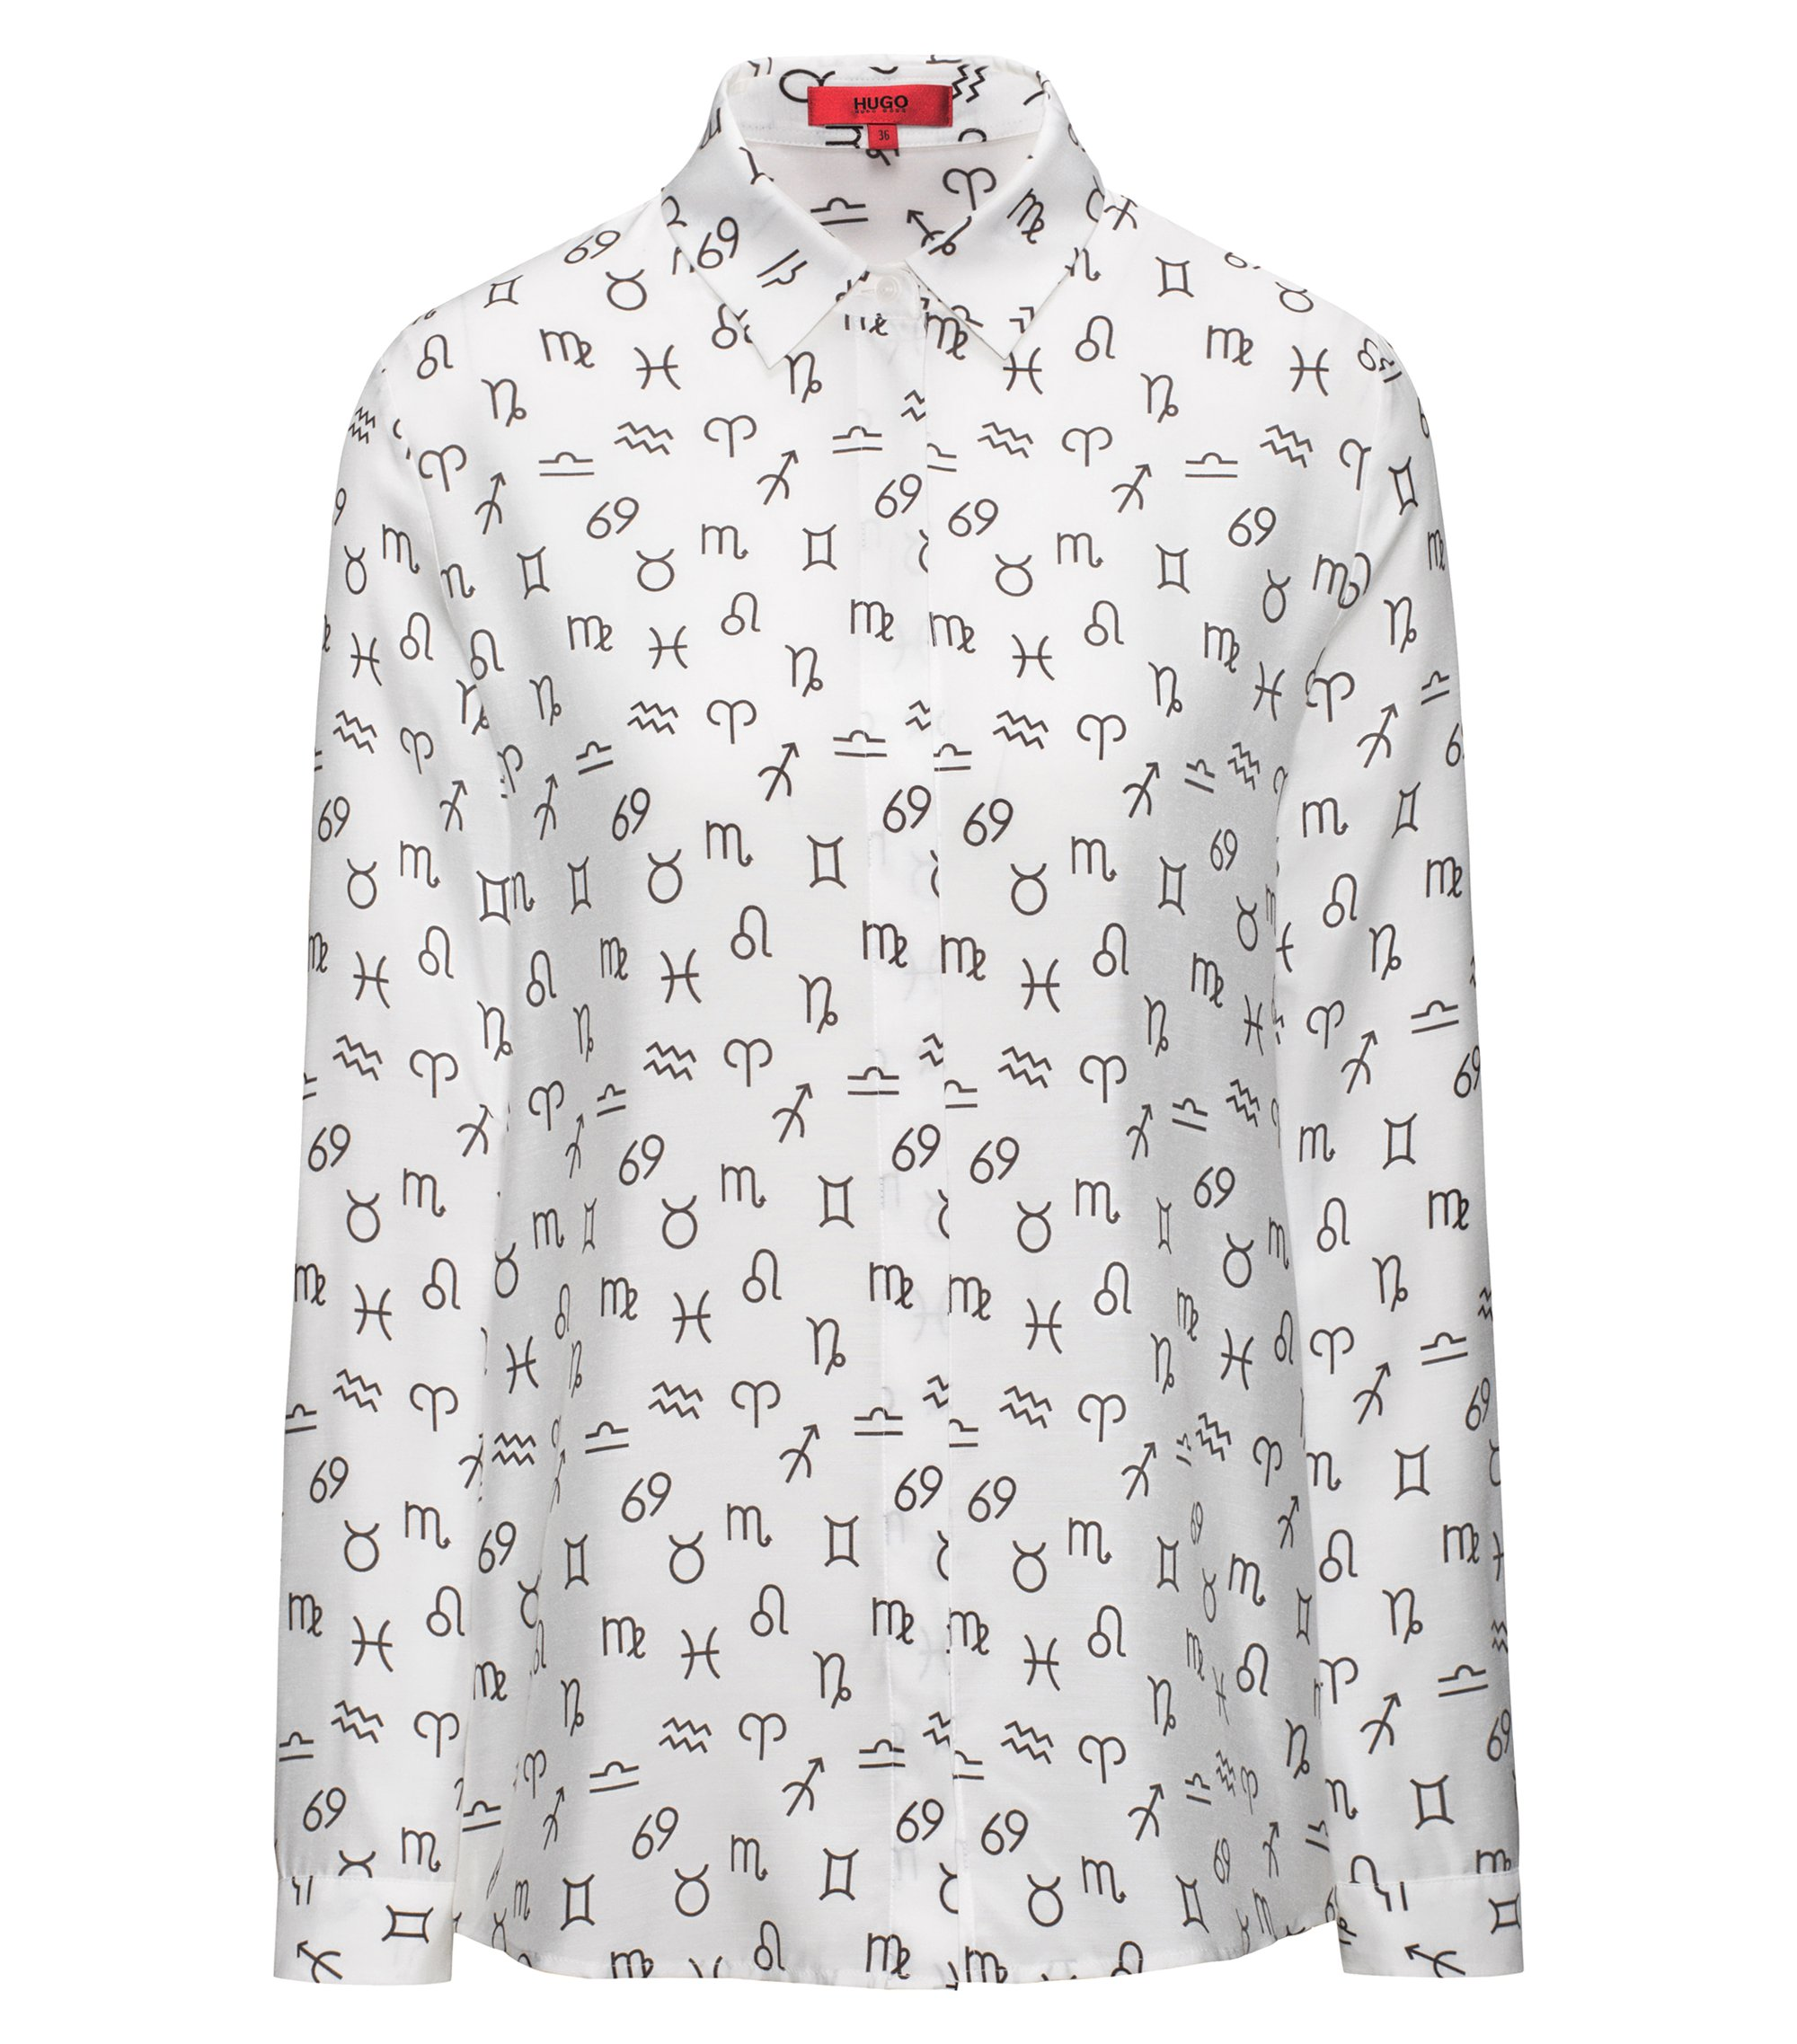 Zodiac-symbol soft shirt in a relaxed fit, Patterned